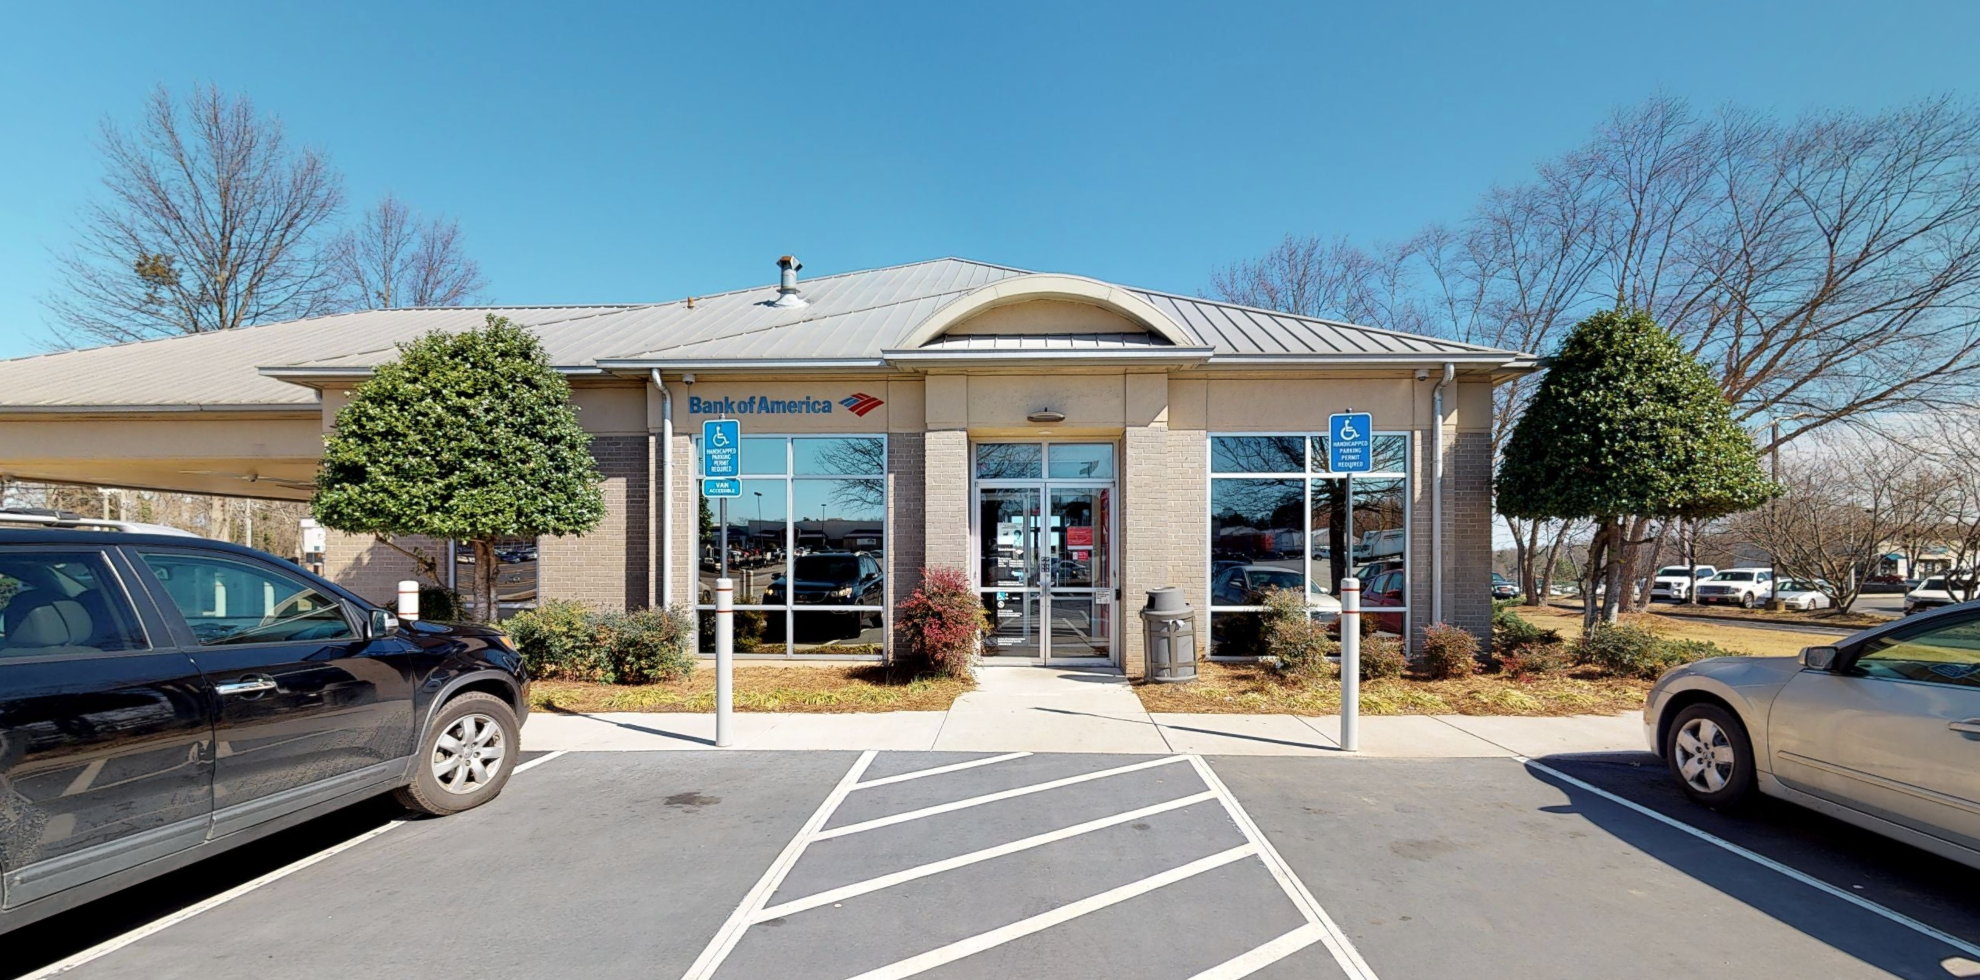 Bank of America financial center with drive-thru ATM and teller | 410 Shallowford Rd NW, Gainesville, GA 30504